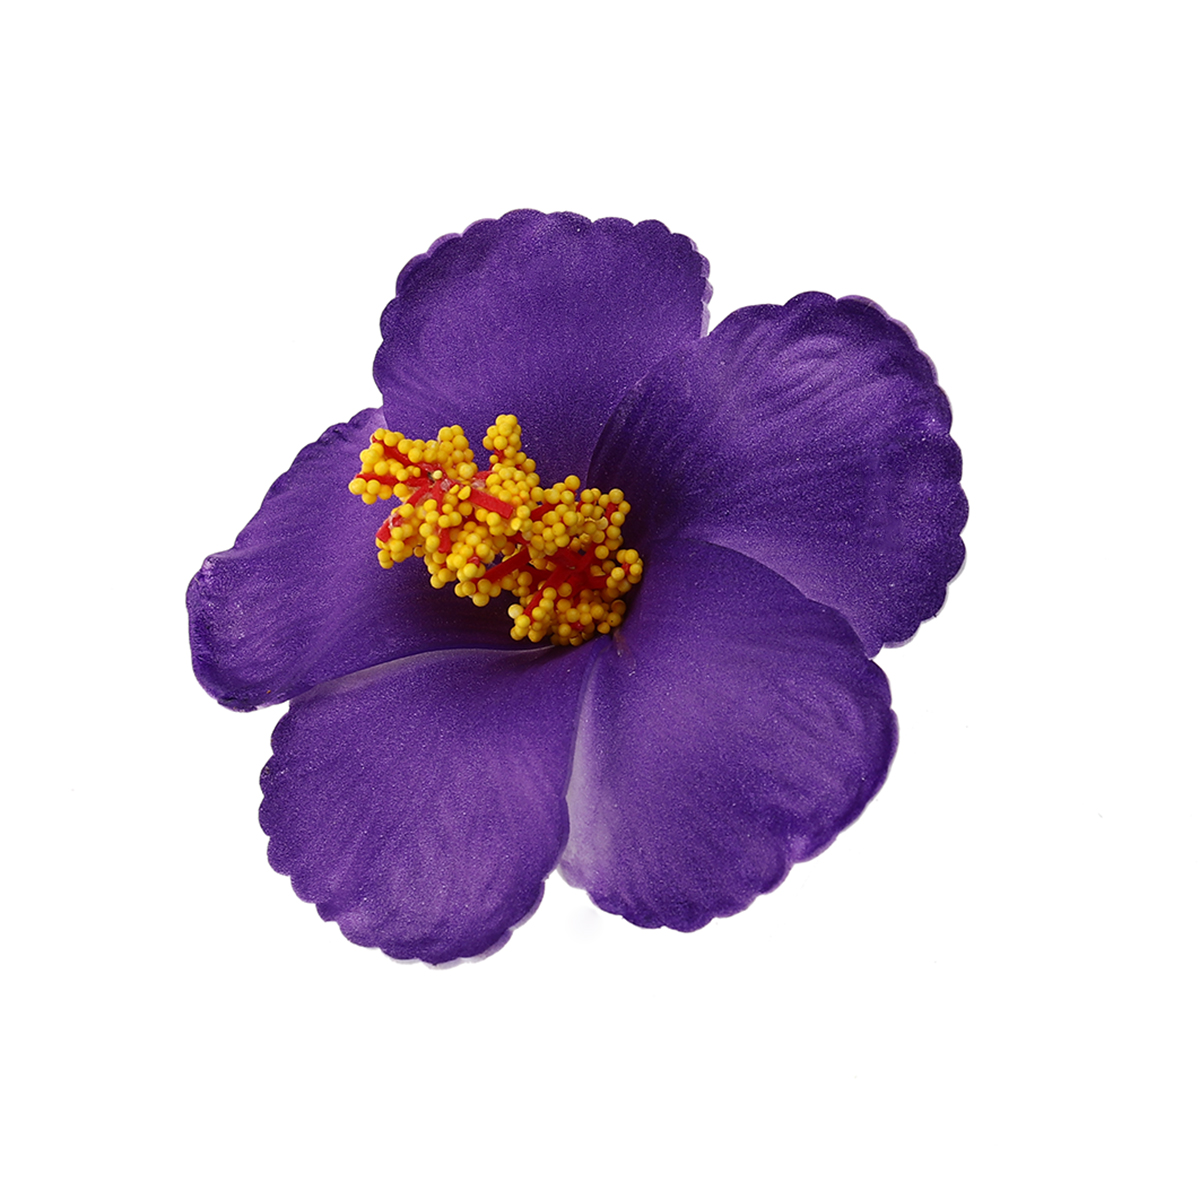 Aliexpress com   Buy BESTOYARD Hibiscus Flowers Hawaiian Artificial     1   Hibiscus Flowers Hawaiian Flowers Artificial Flowers for Tabletop  Decoration Party Favors Supplies  Purple